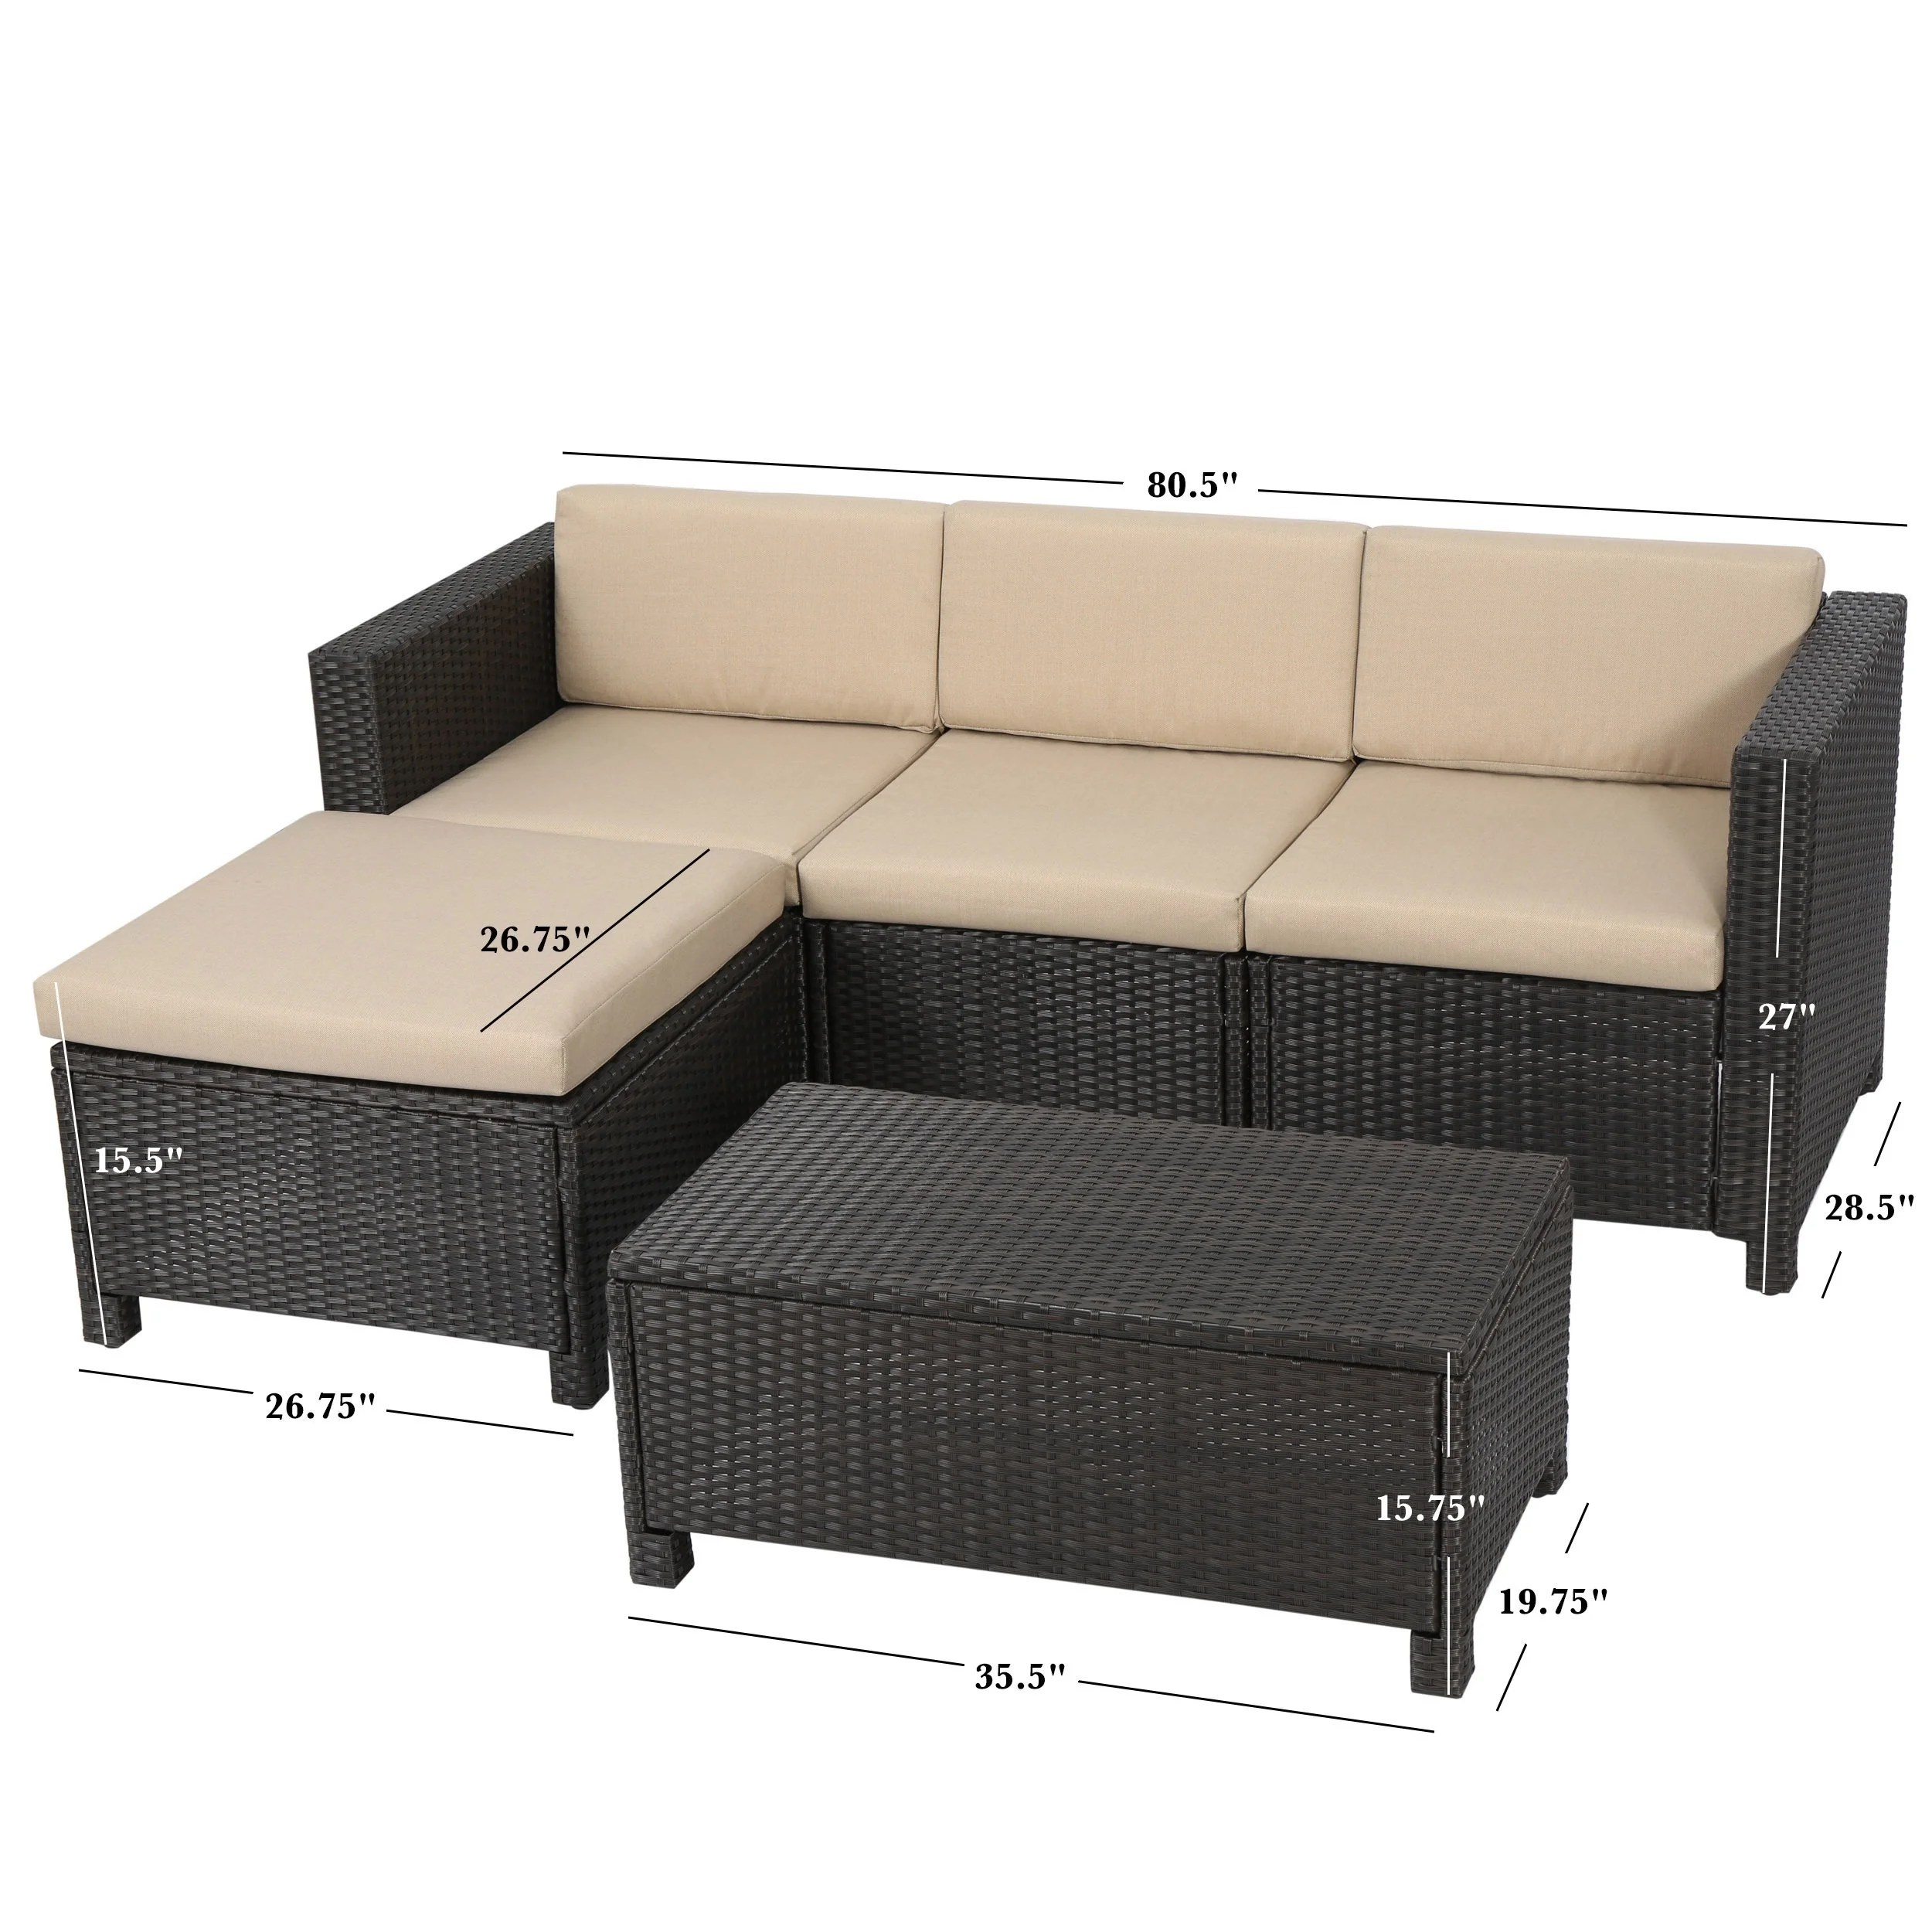 Outdoor Couch Moses 5 Piece Outdoor Sofa Set